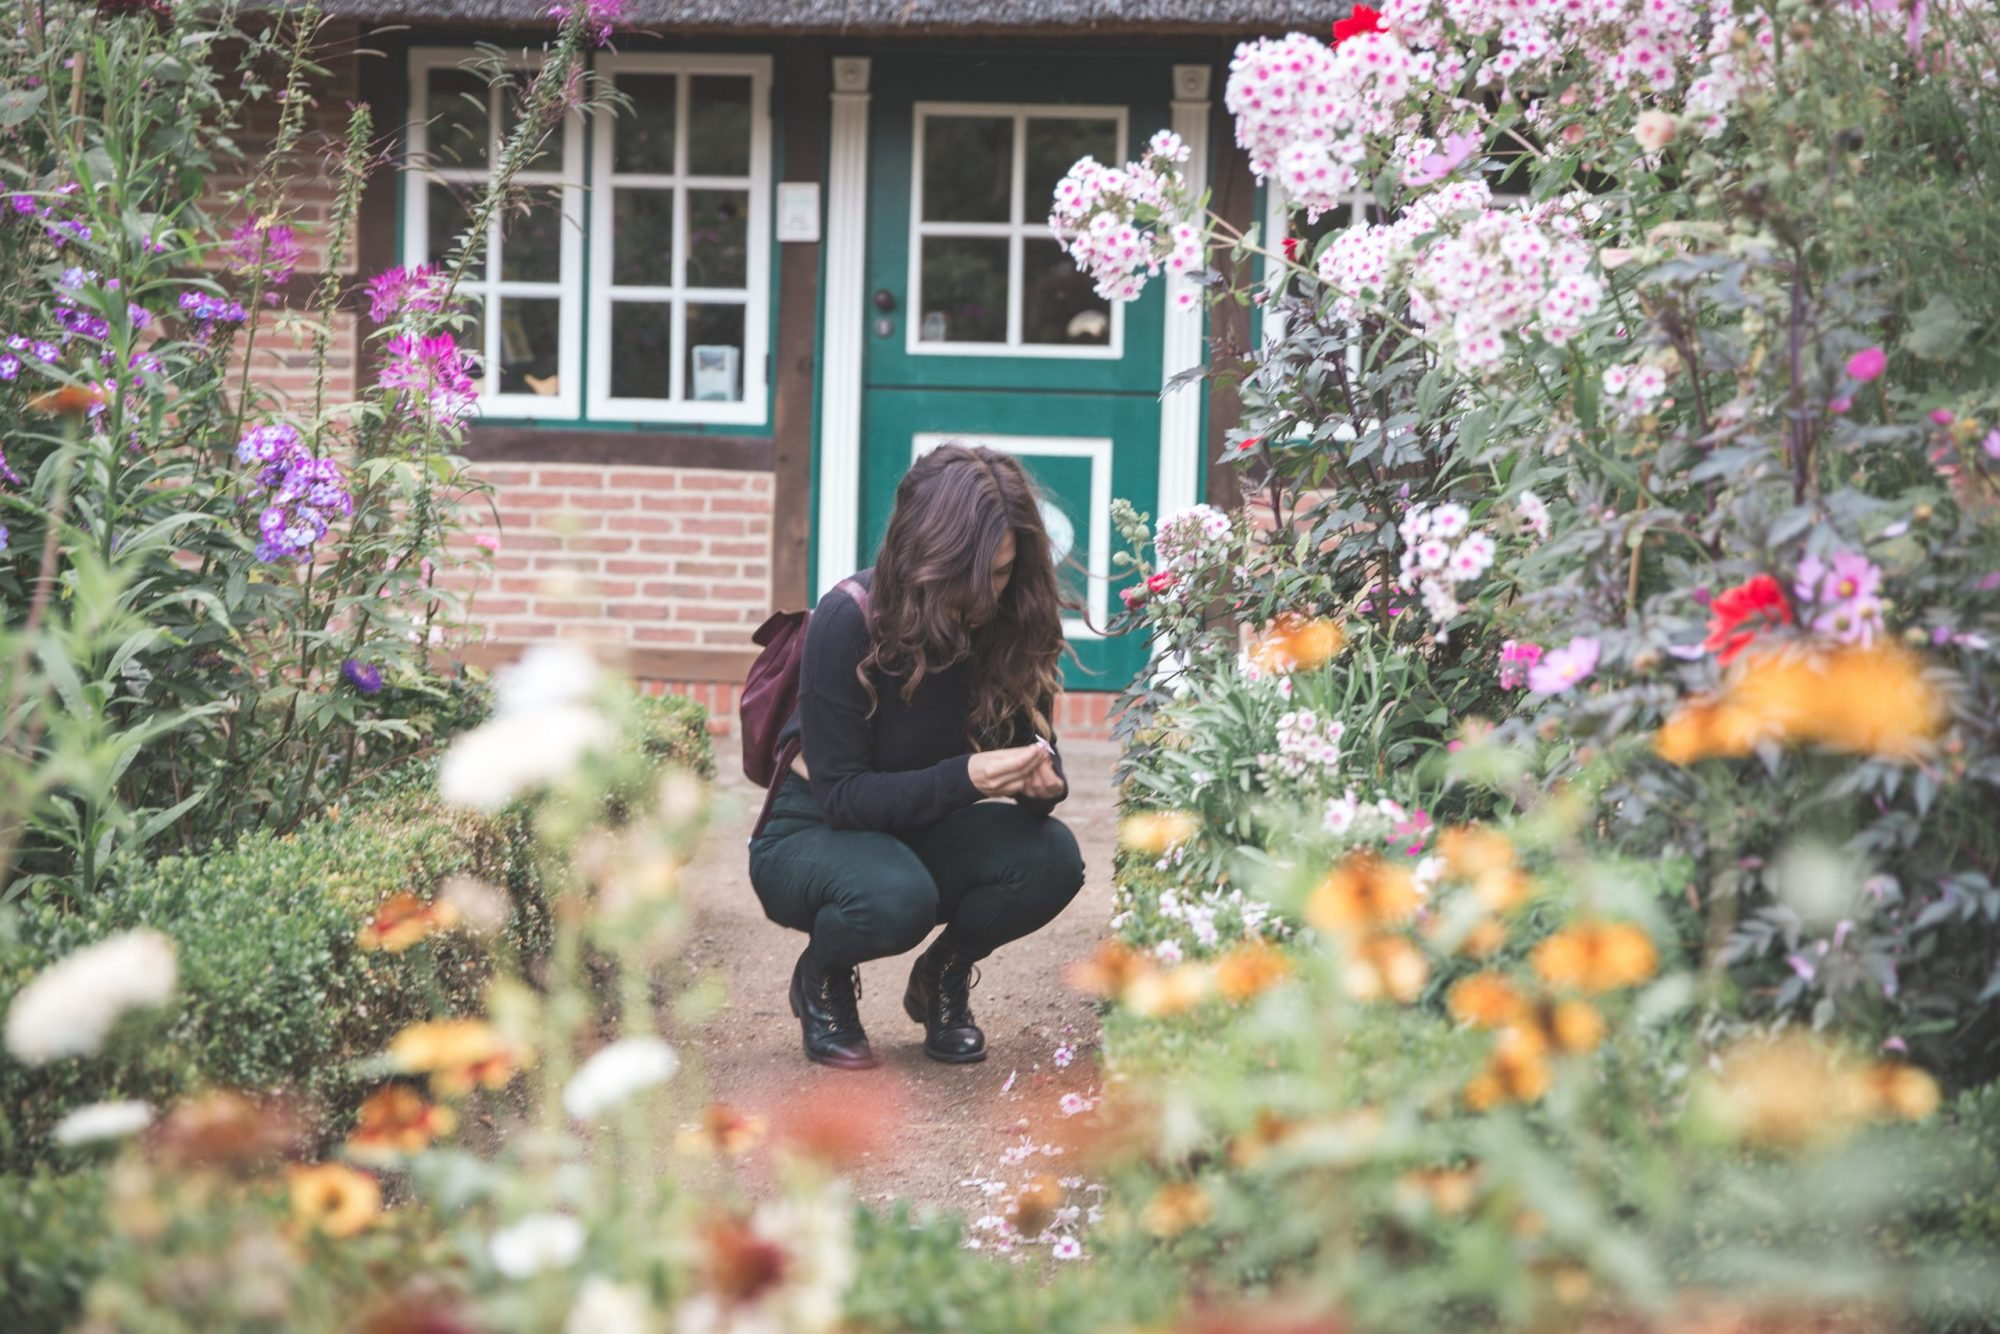 Kelsey bending down and wearing new boots while looking at a flower in the The Loki Schmidt Botanical Gardens in Hamburg, Germany